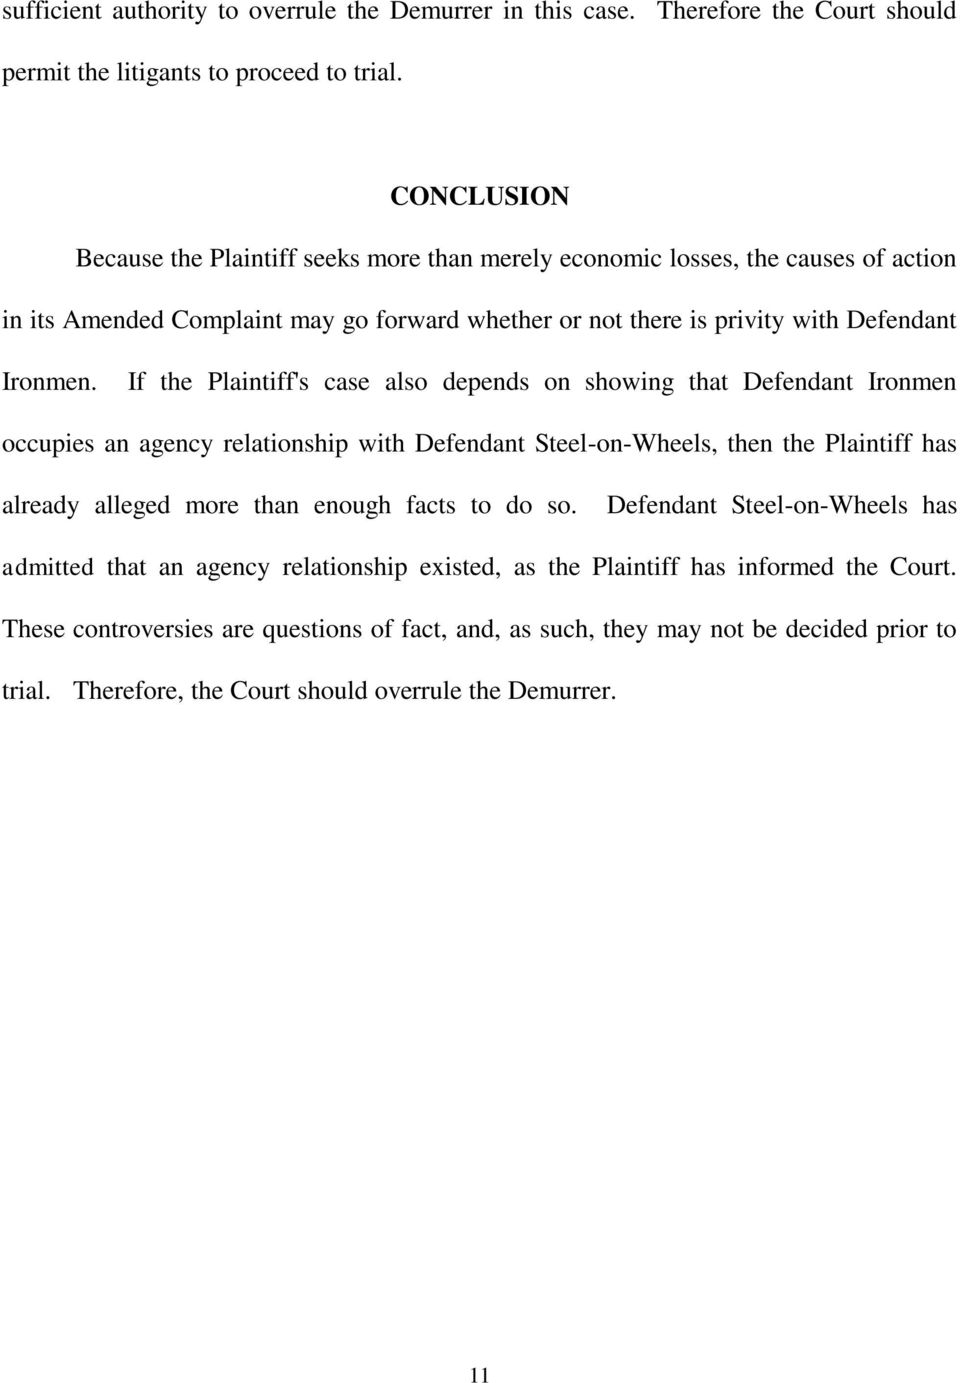 If the Plaintiff's case also depends on showing that Defendant Ironmen occupies an agency relationship with Defendant Steel-on-Wheels, then the Plaintiff has already alleged more than enough facts